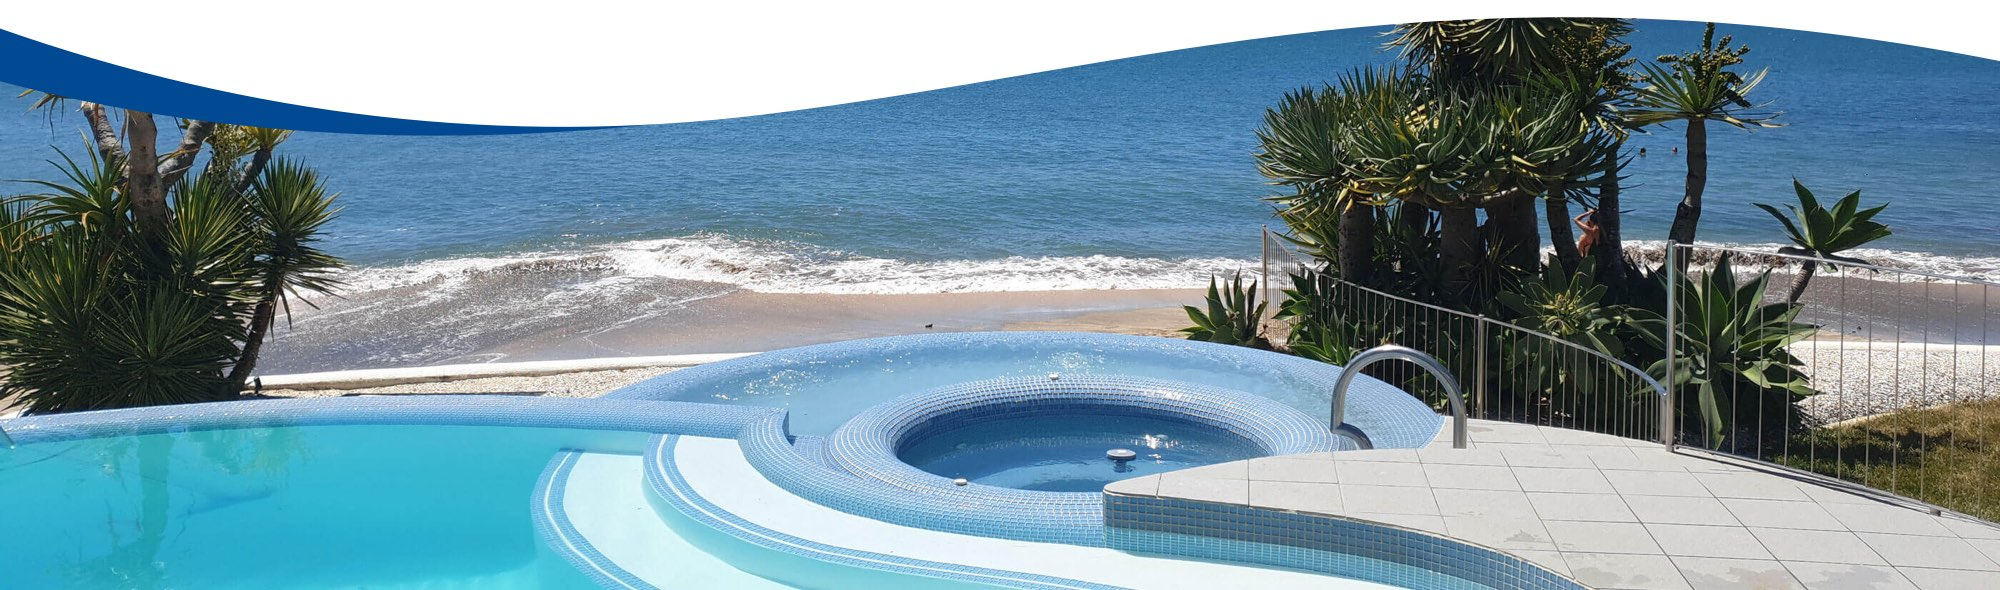 About Us - Oasis Pools are your pool and spa specialists with a store located in New Lynn - Prior Job - Beachside Pool